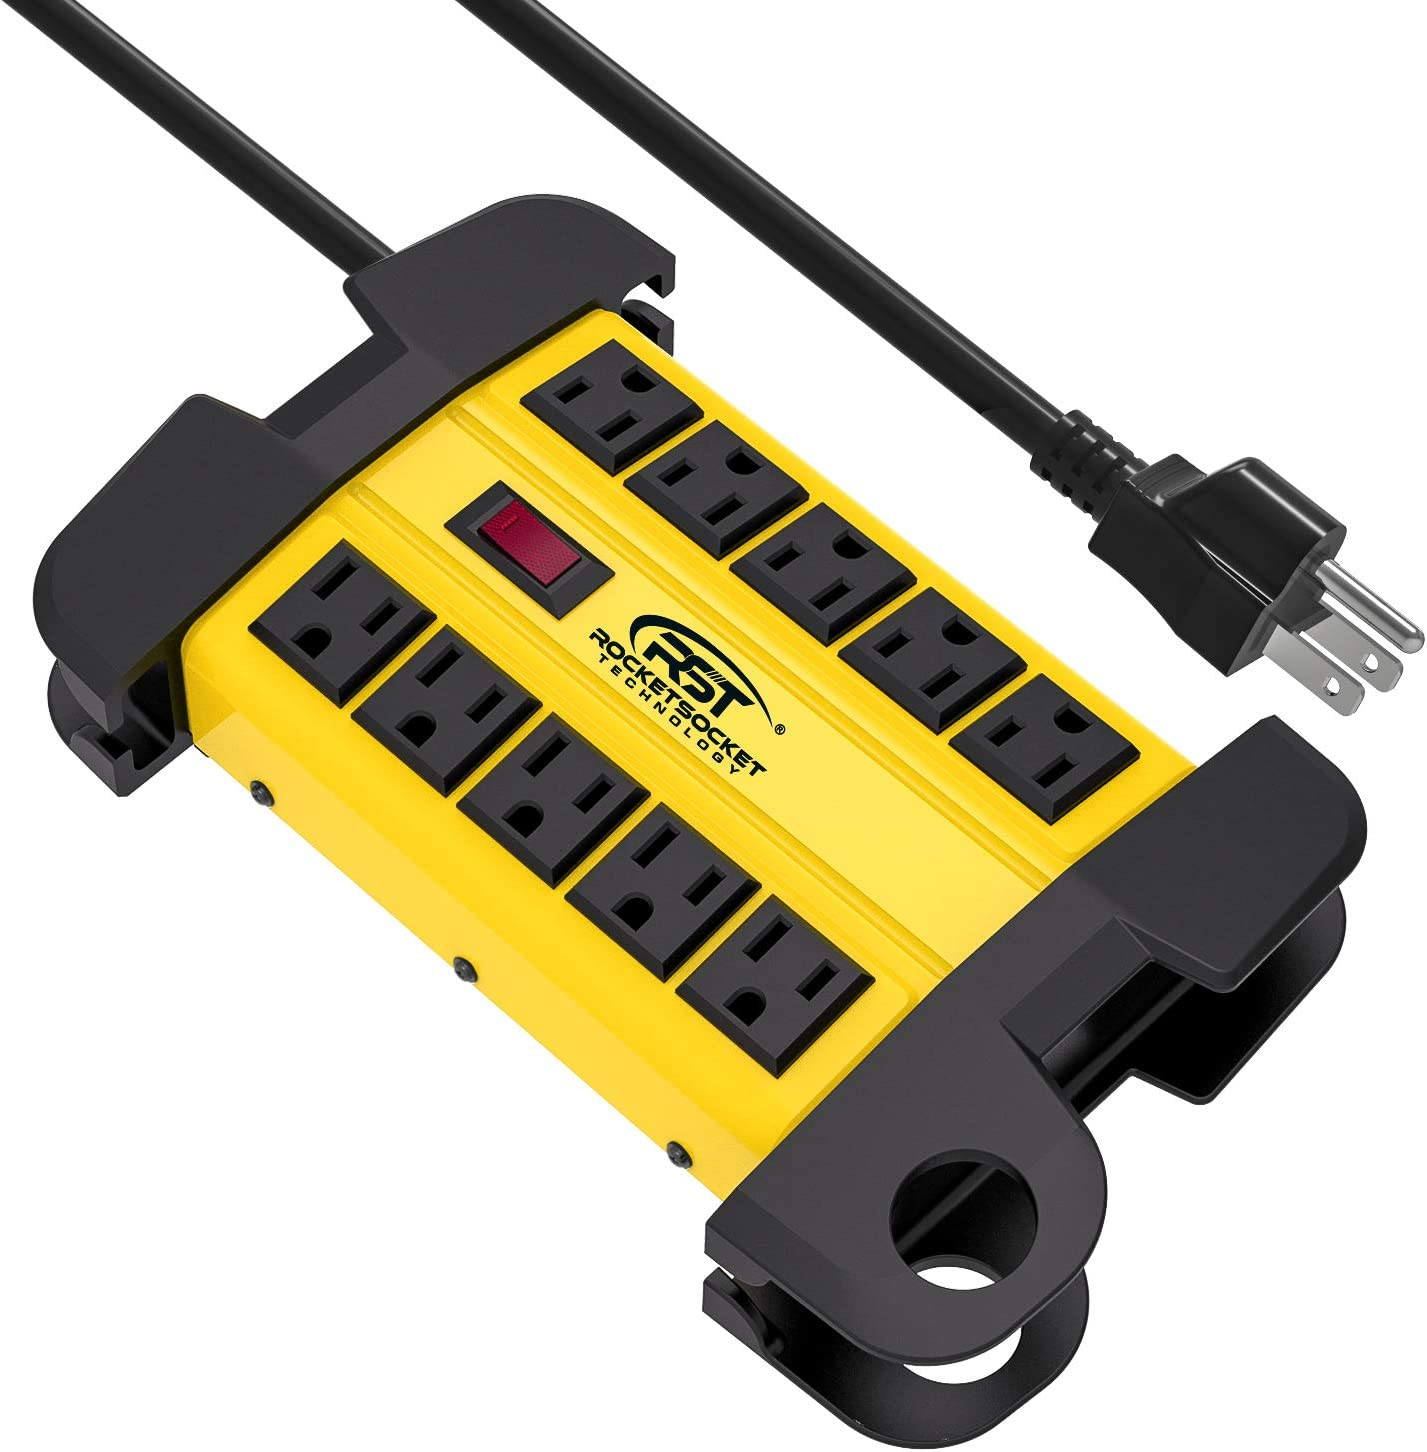 CRST 10-Outlets Heavy Duty Power Strip Metal Surge Protector with 15 Amps